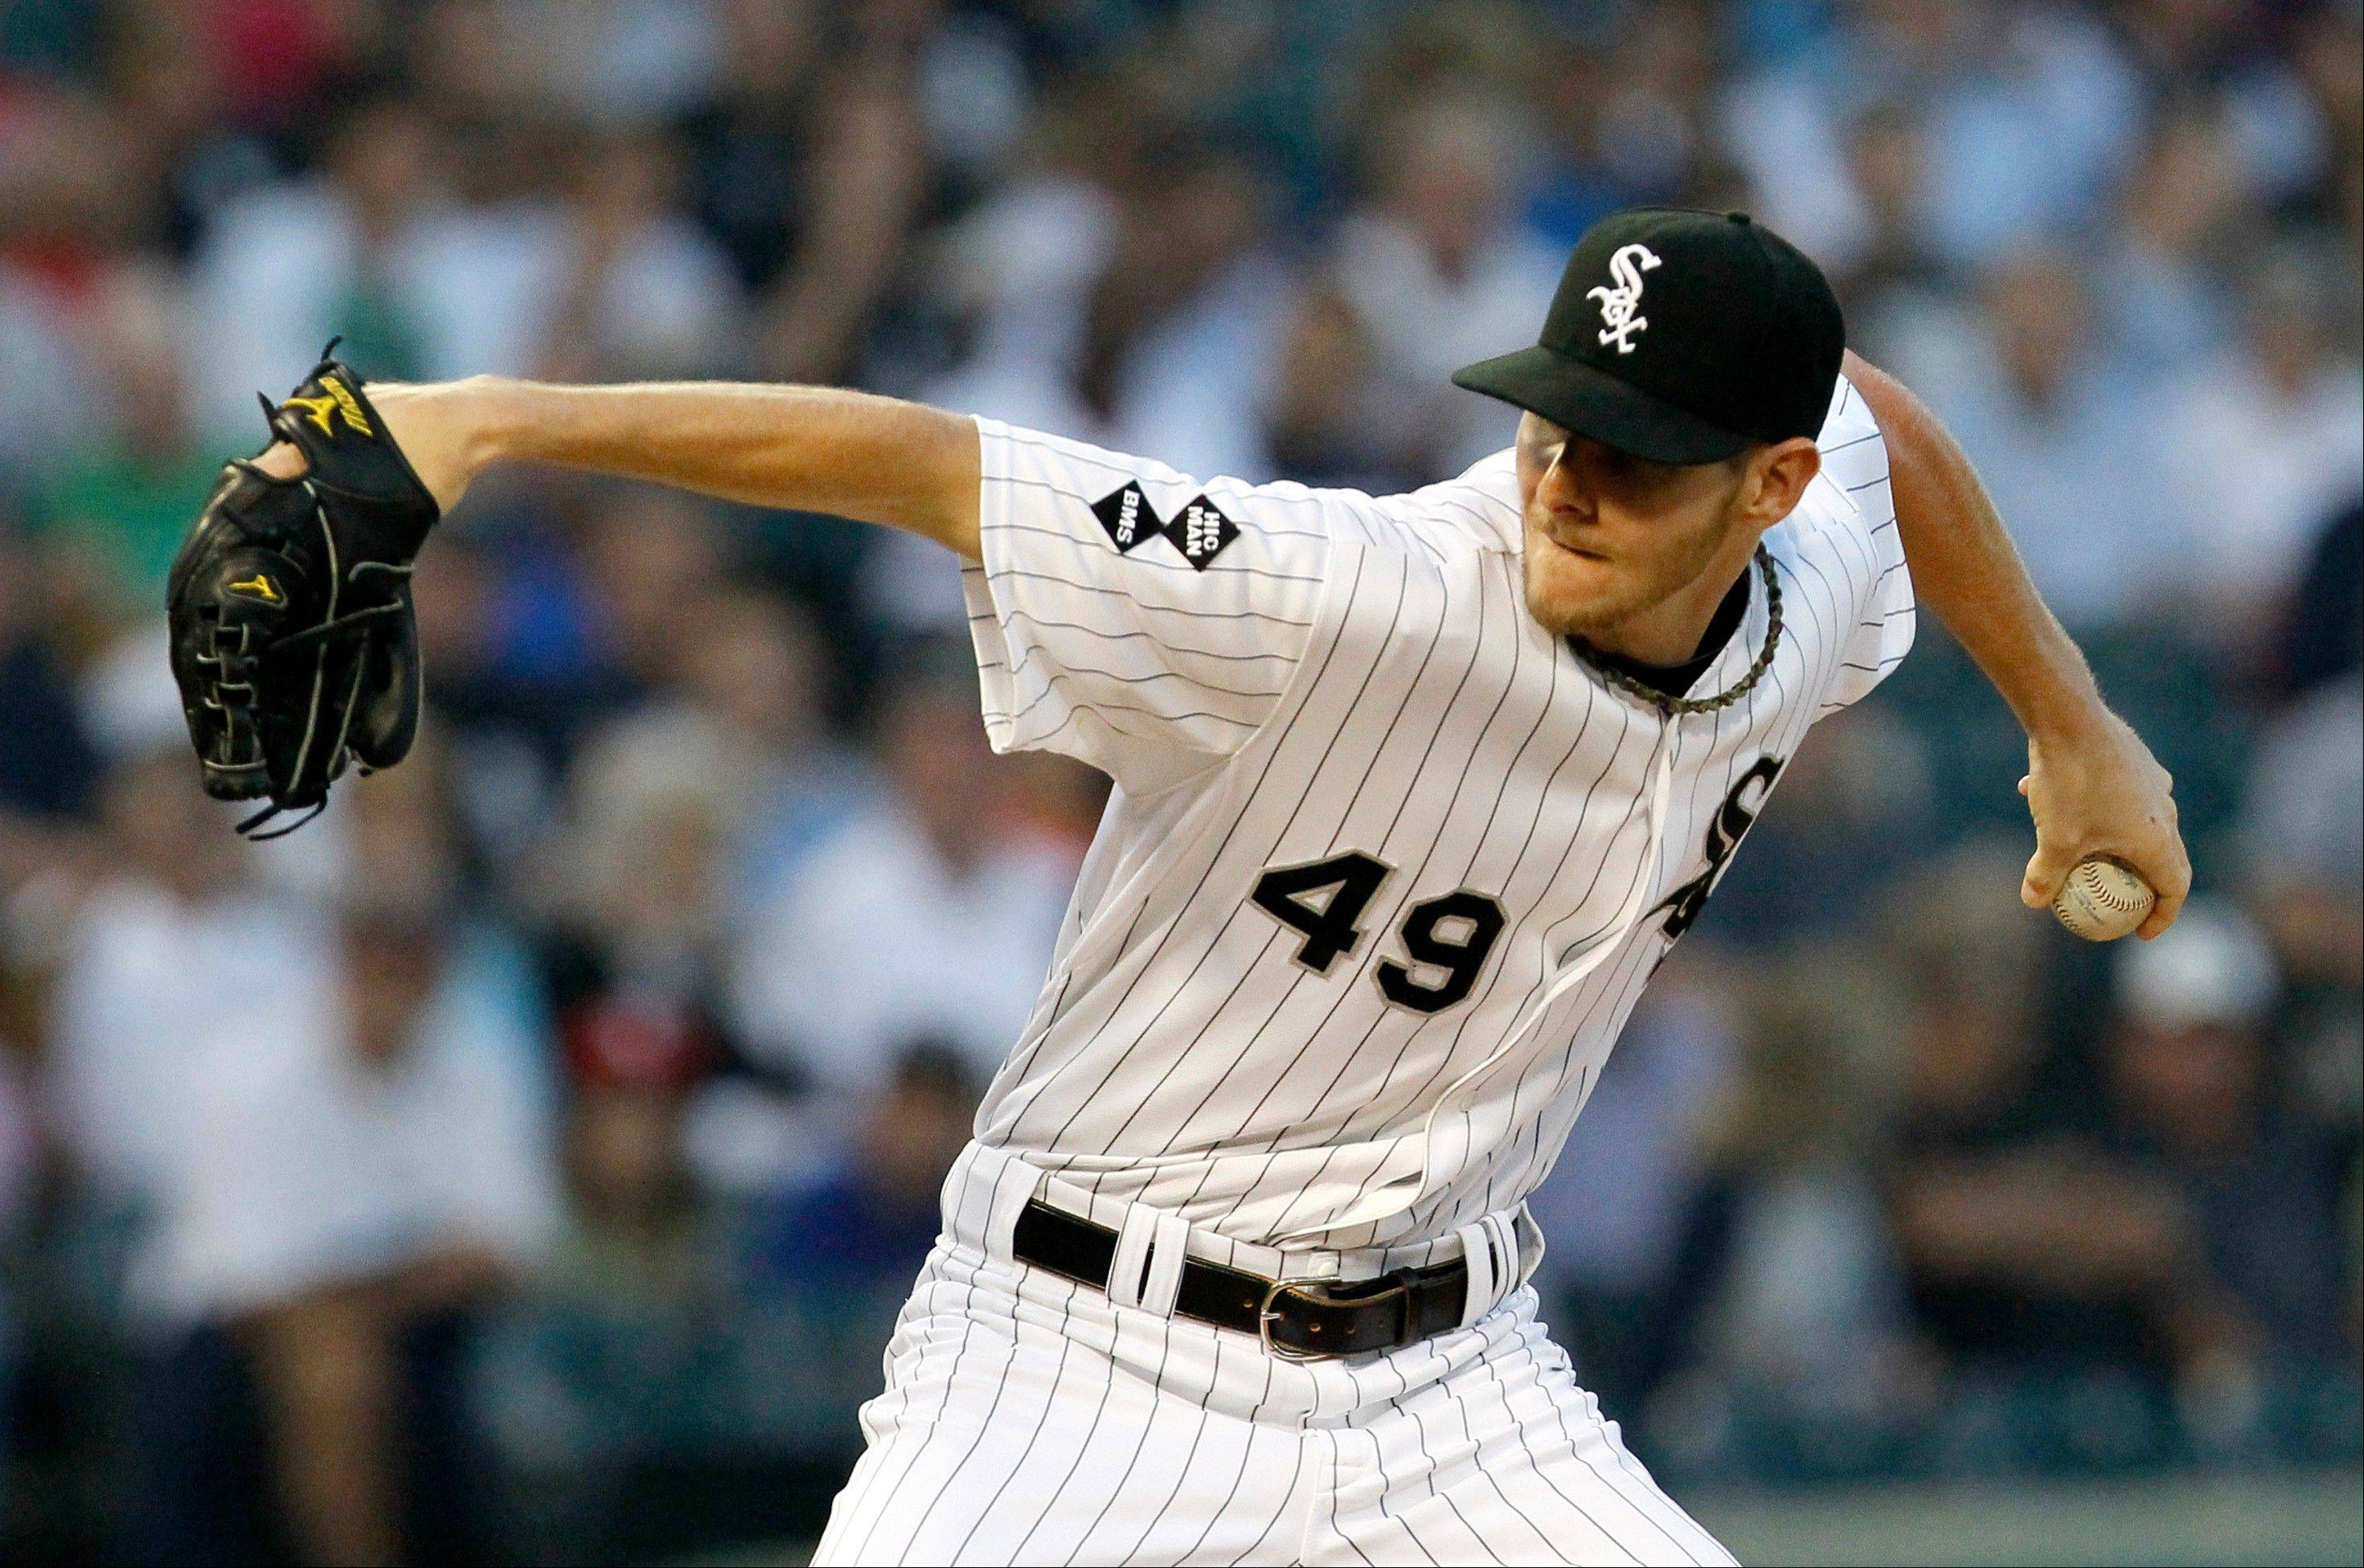 There are five solid contenders for the AL Cy Young Award this season, and Chris Sale of the White Sox is one of them.